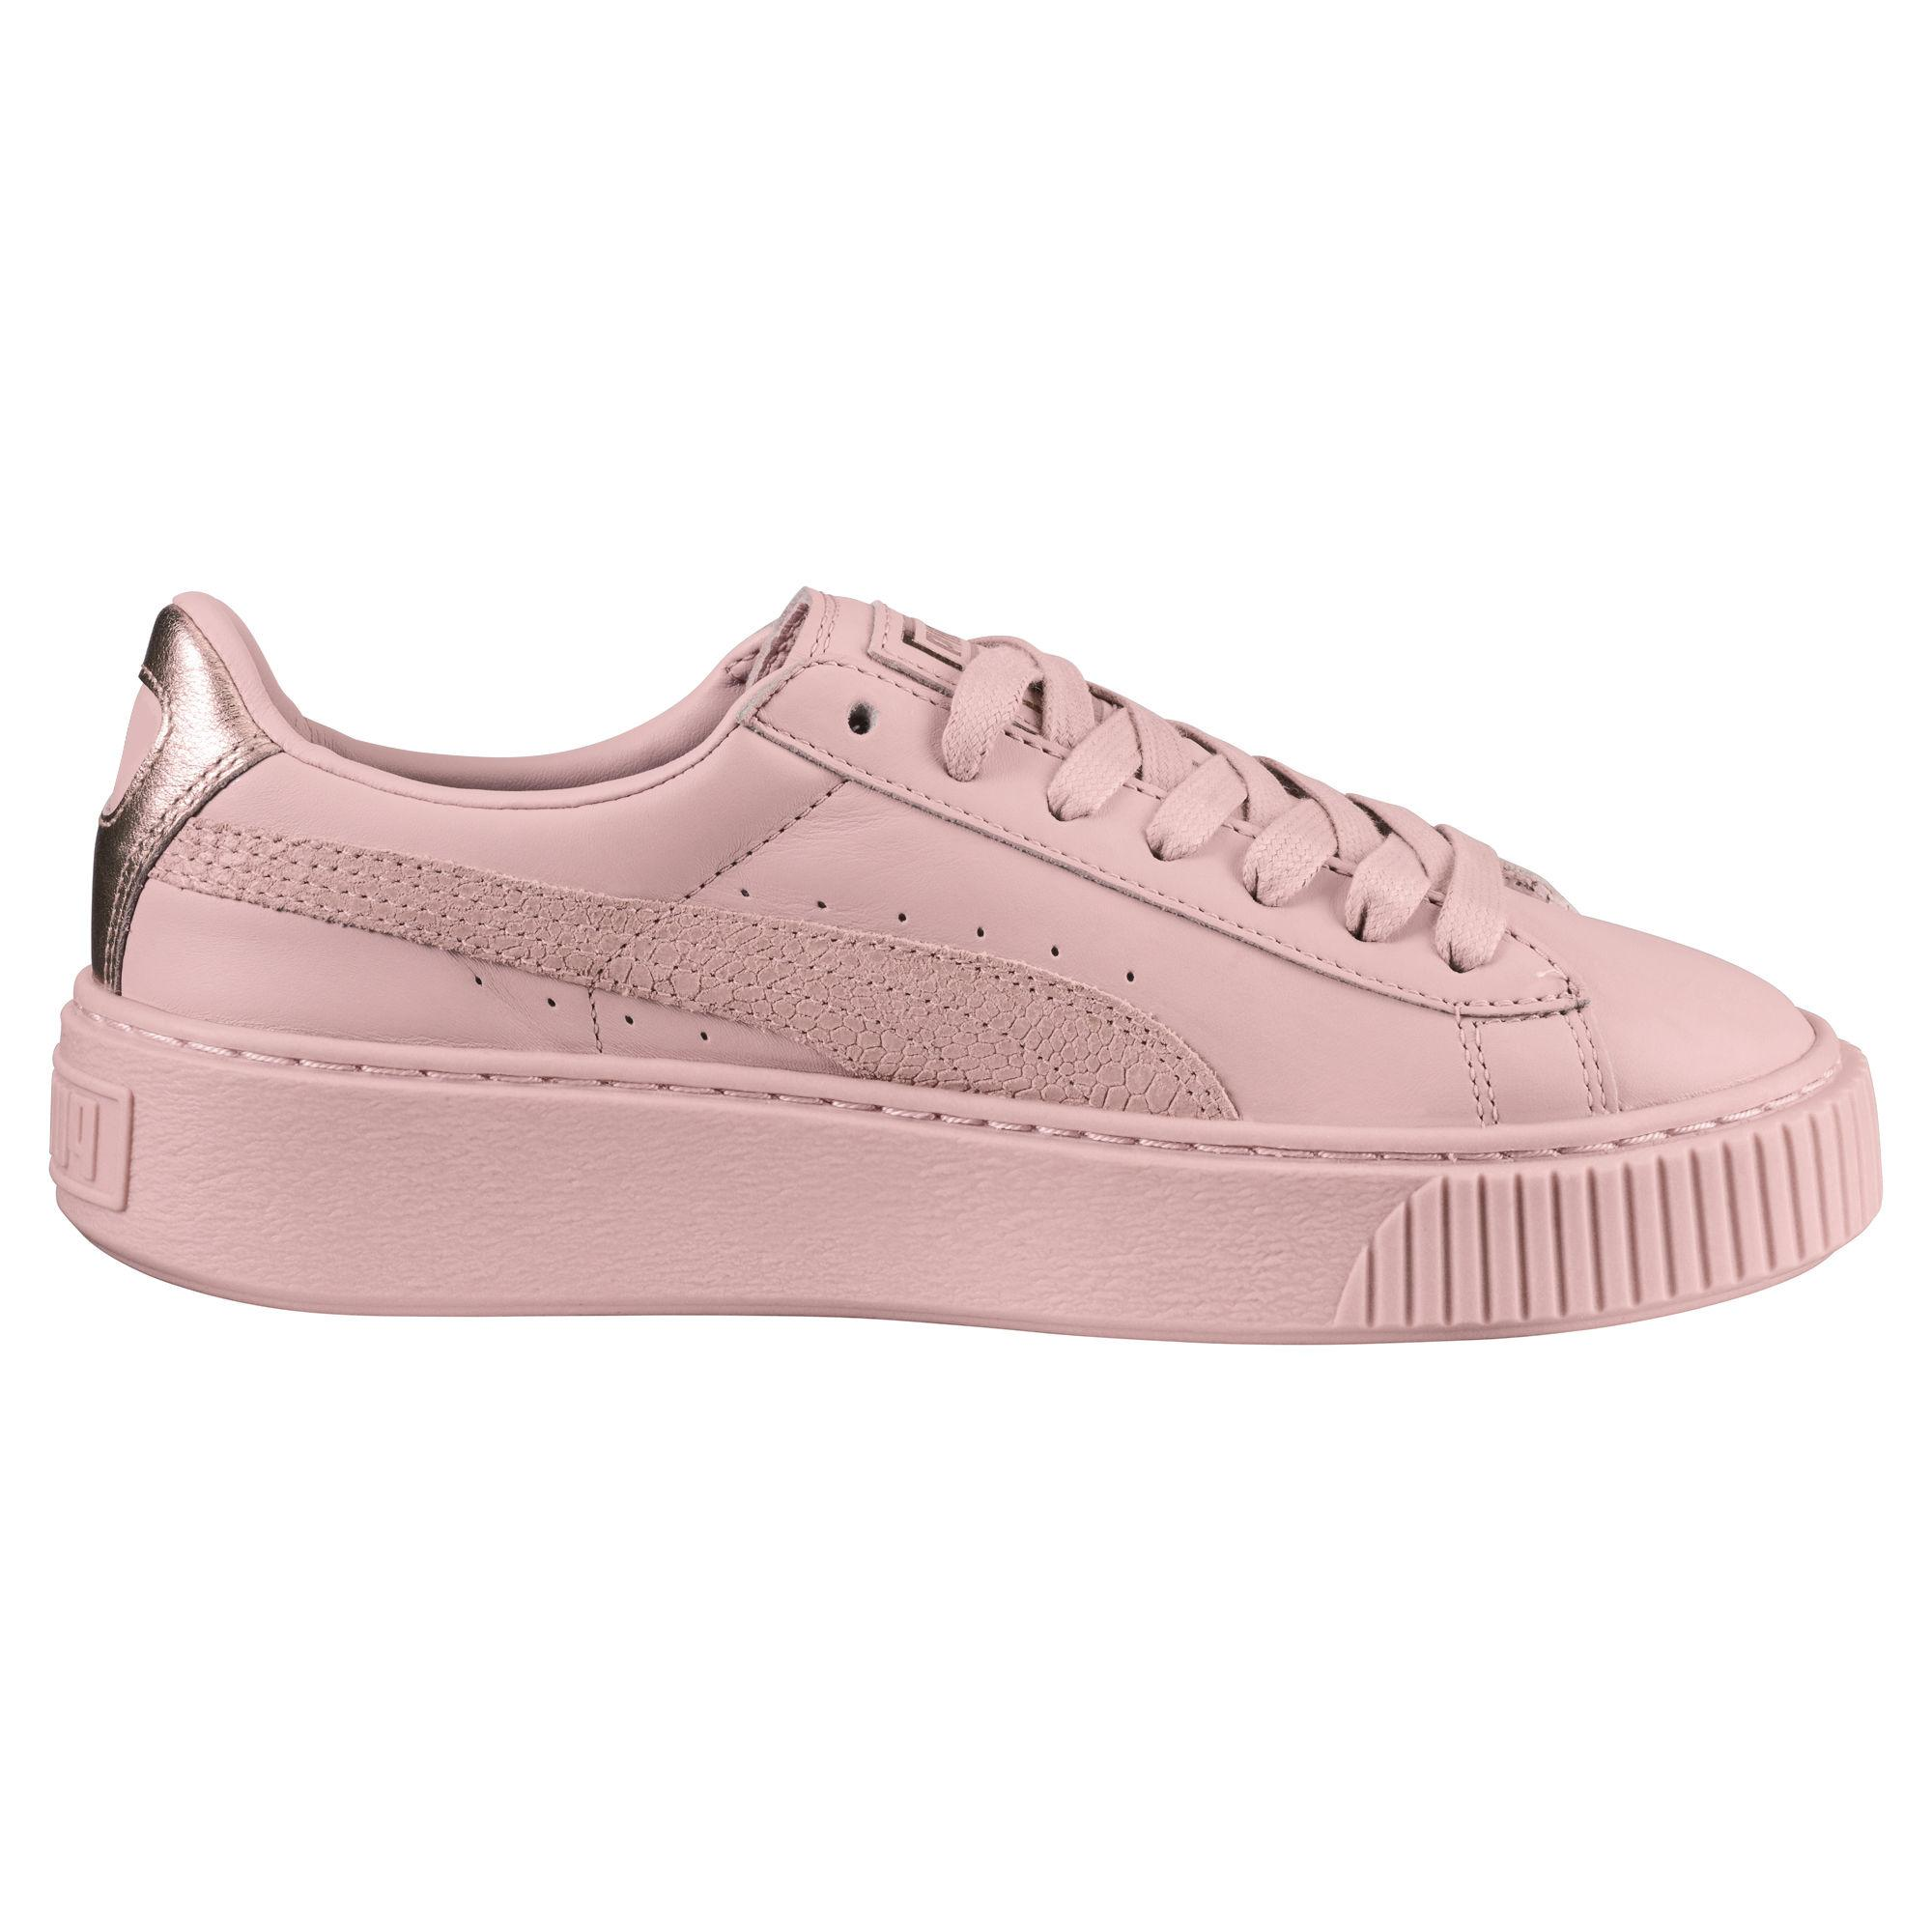 new arrival 88731 ac87b Puma Shoes Basket Platform Euphoria RG Woman